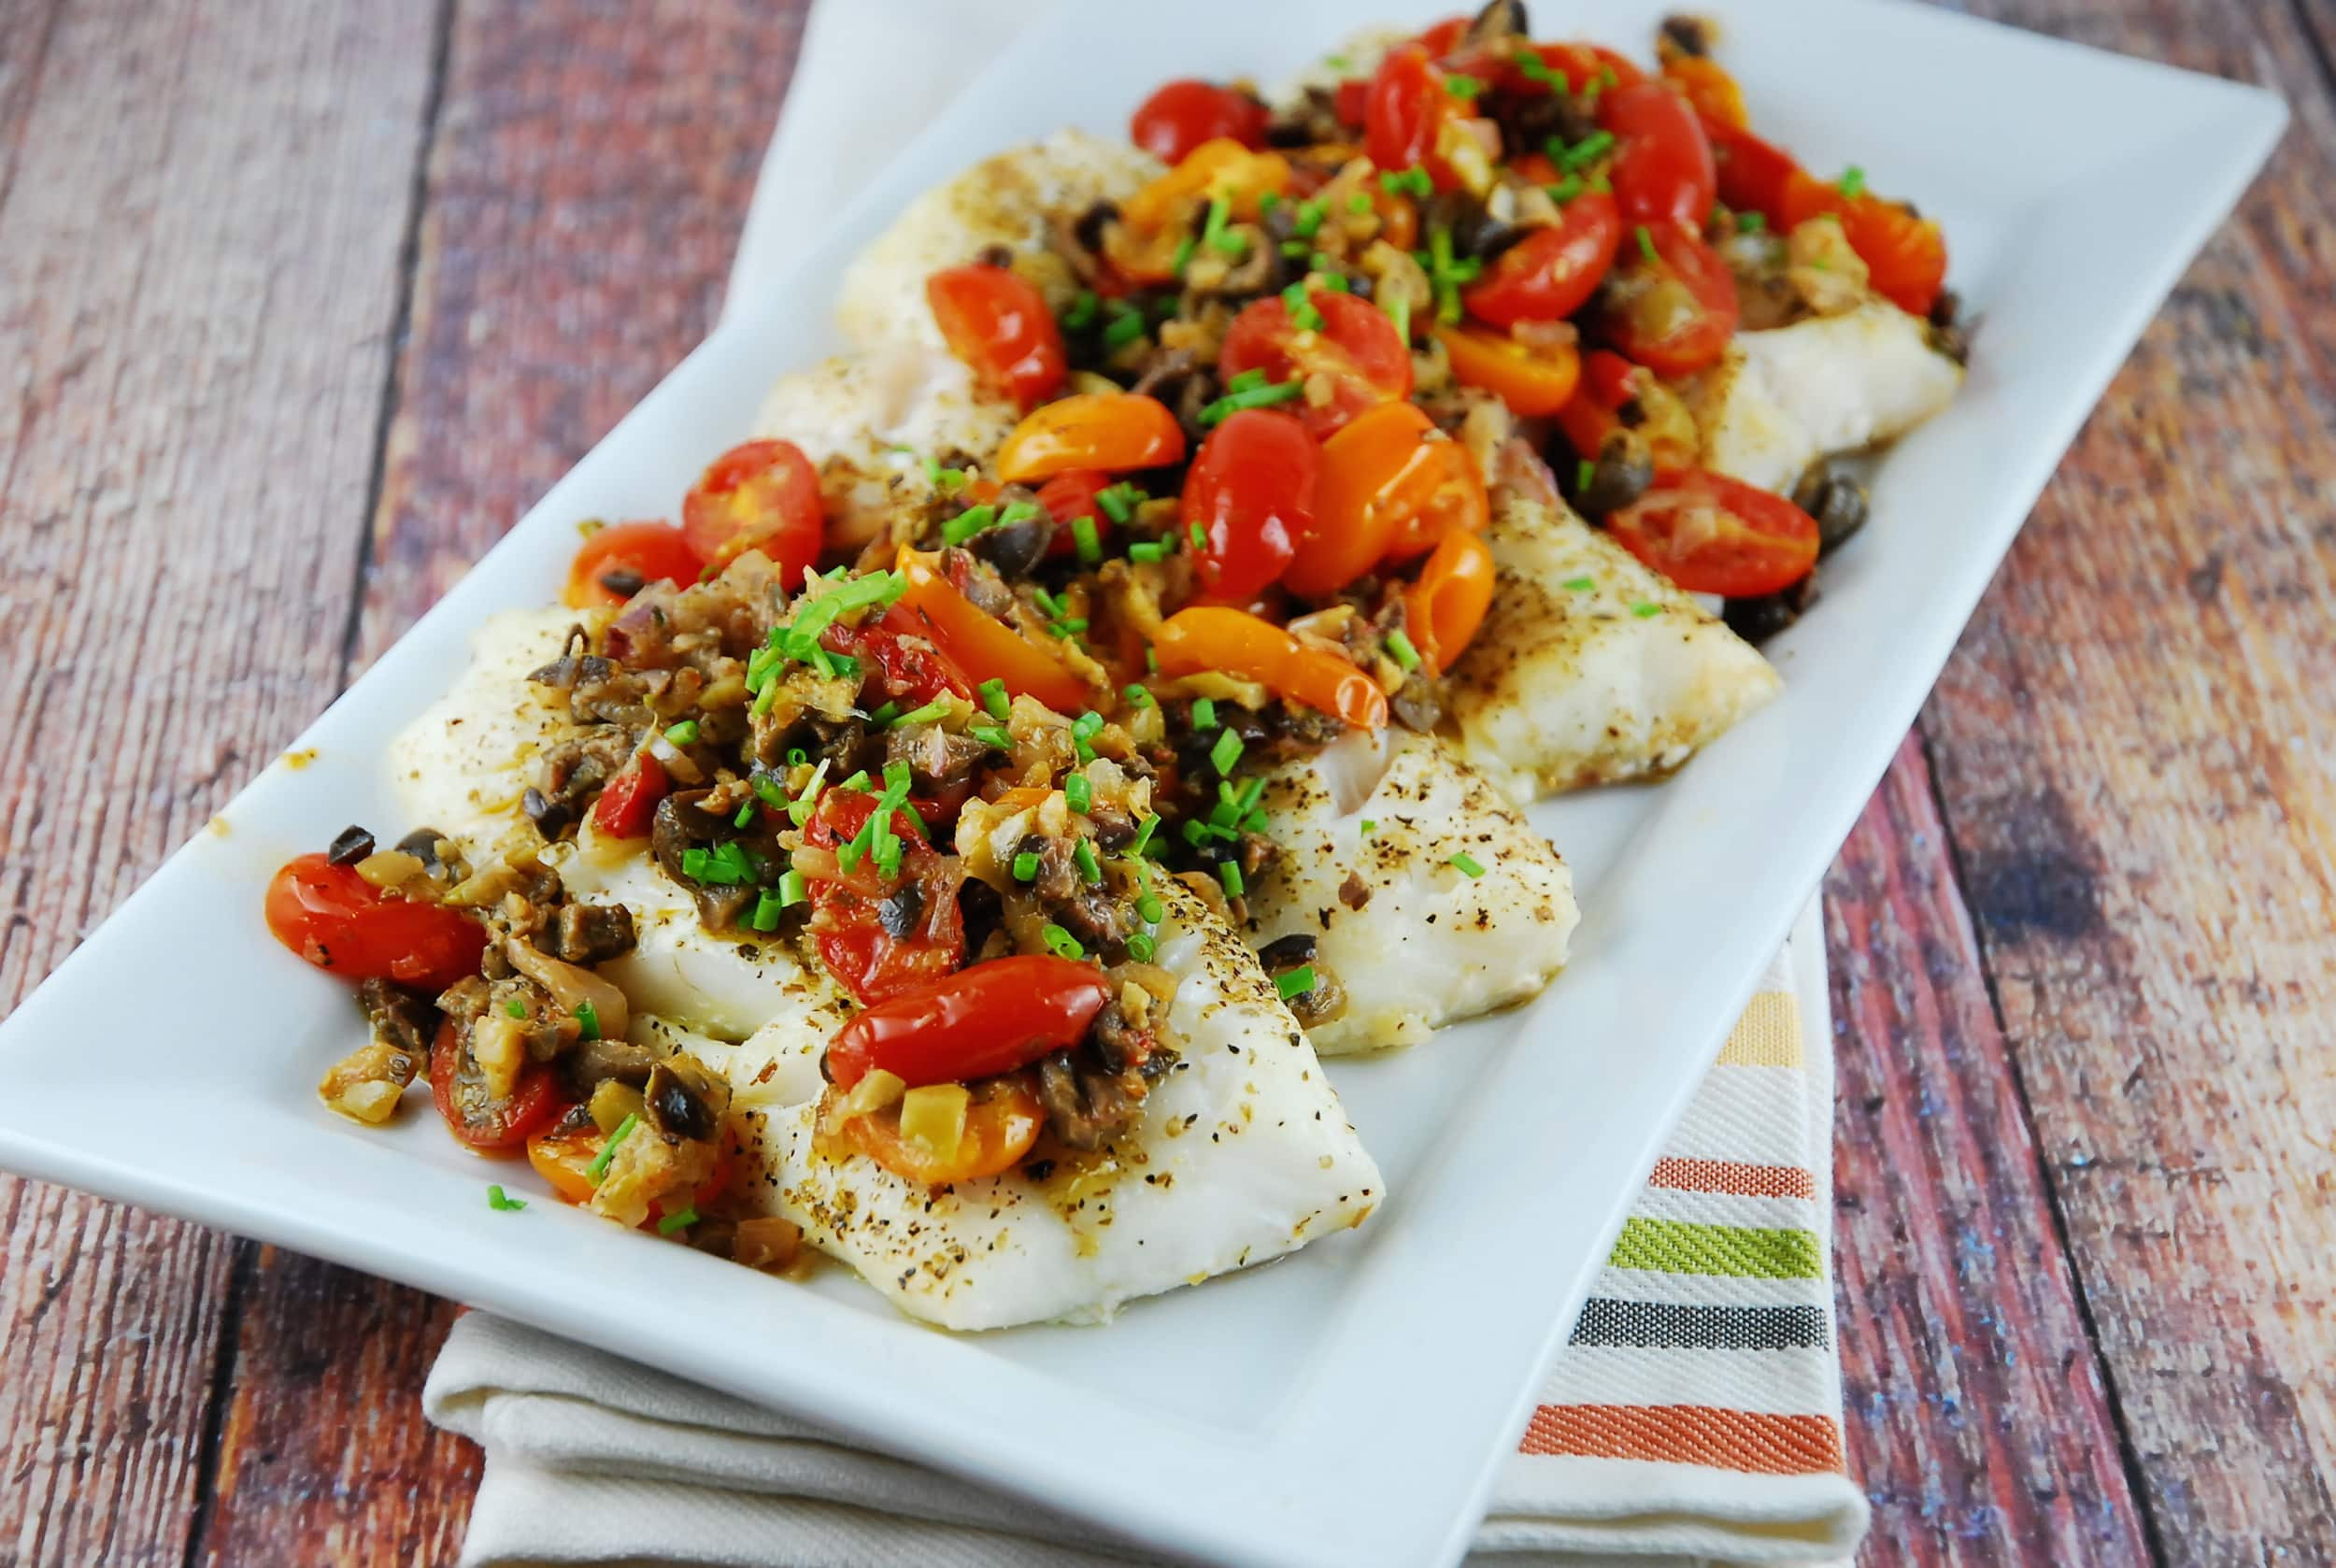 Grilled Cod Fish Recipes Healthy  Baked Cod with Olive and Tomato Tapenade 4 Points LaaLoosh